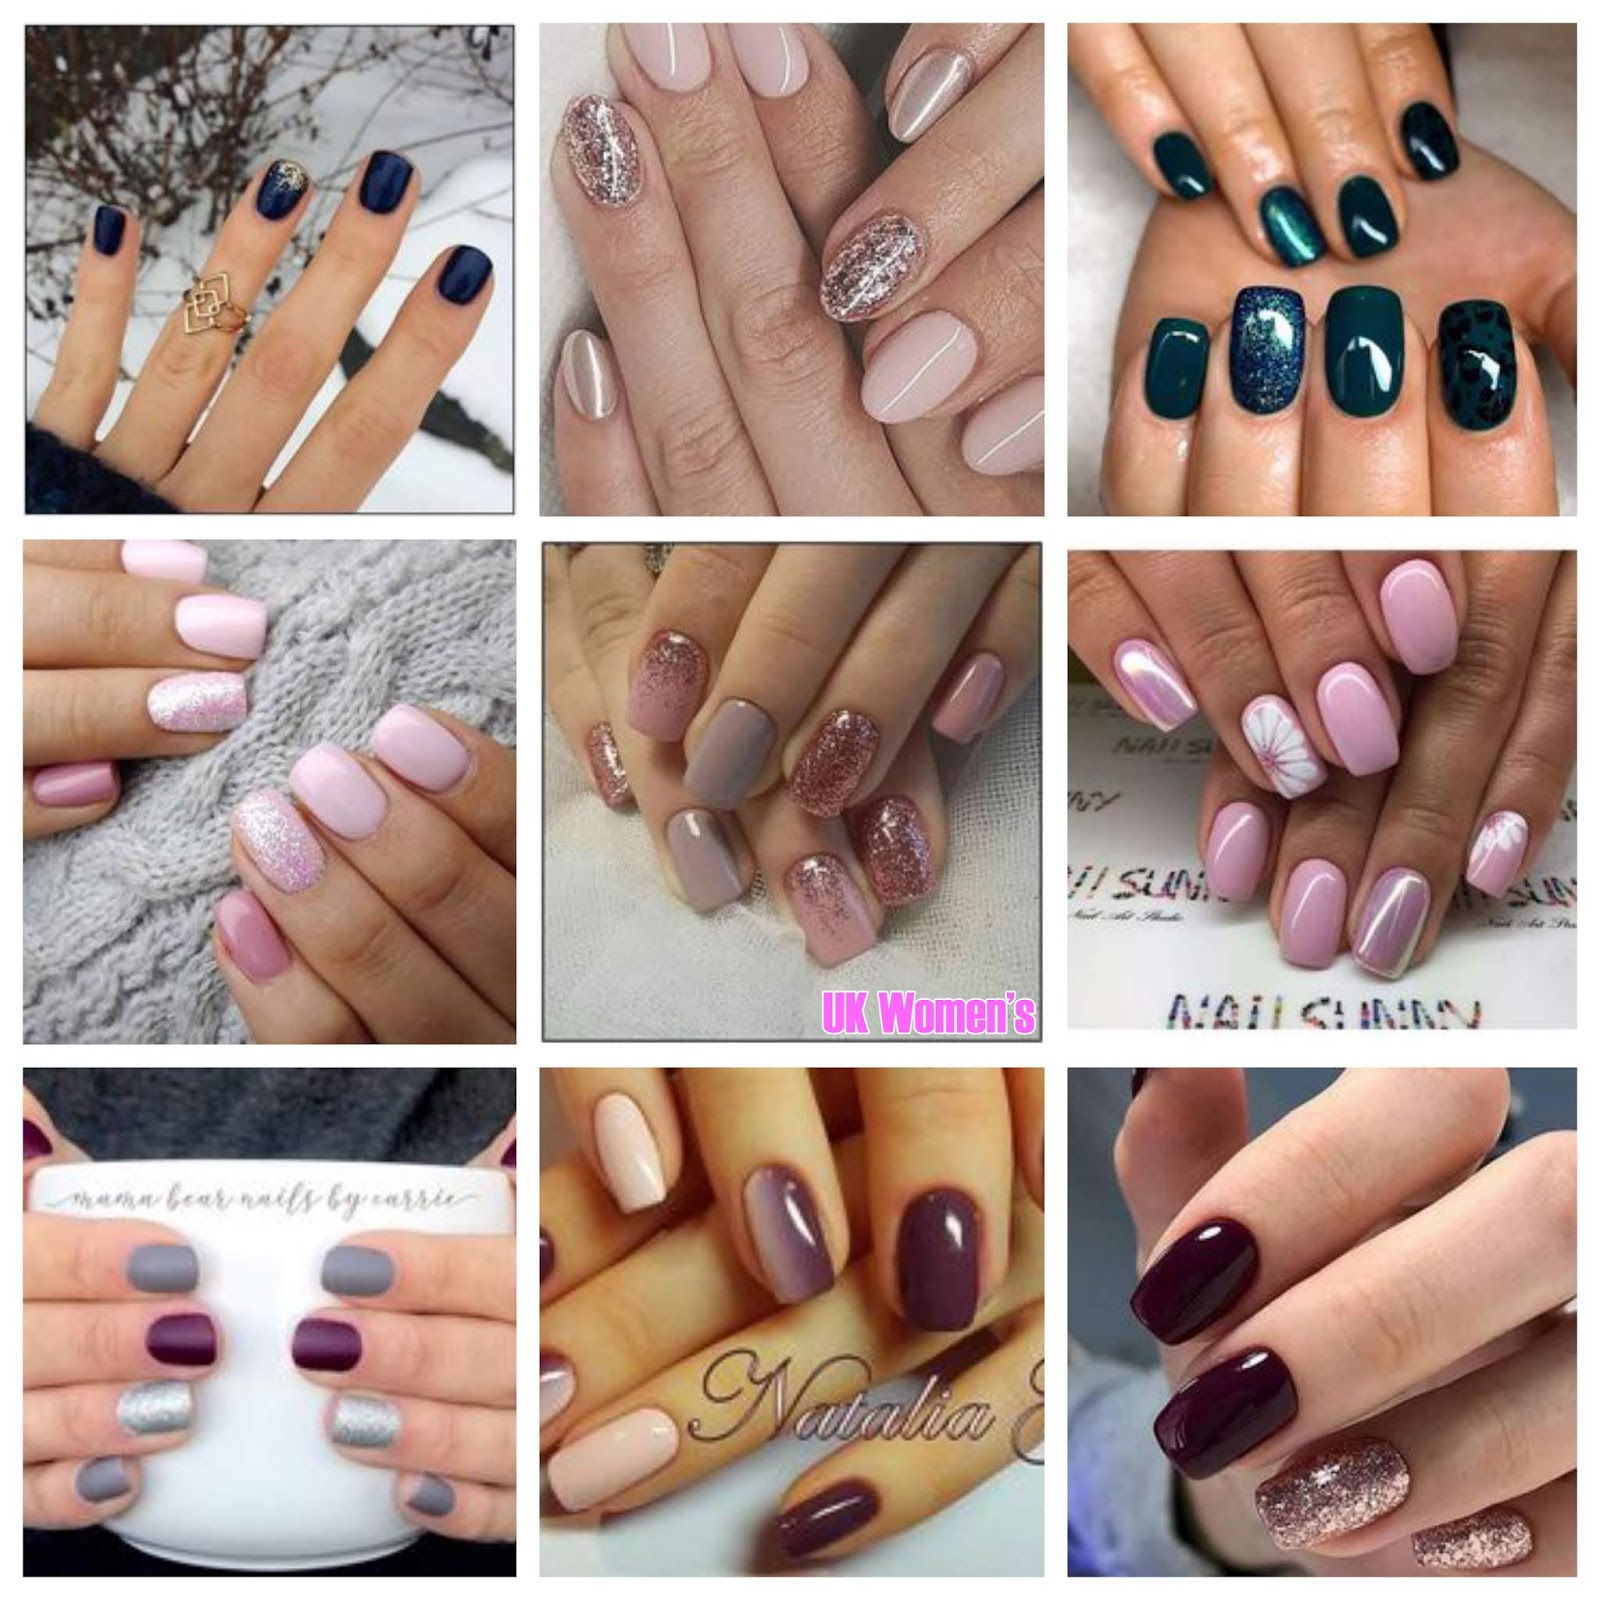 Short-Nails-Art-Designs-To-Try-2-1 Newest Short Nails Art Designs To Try In 2020